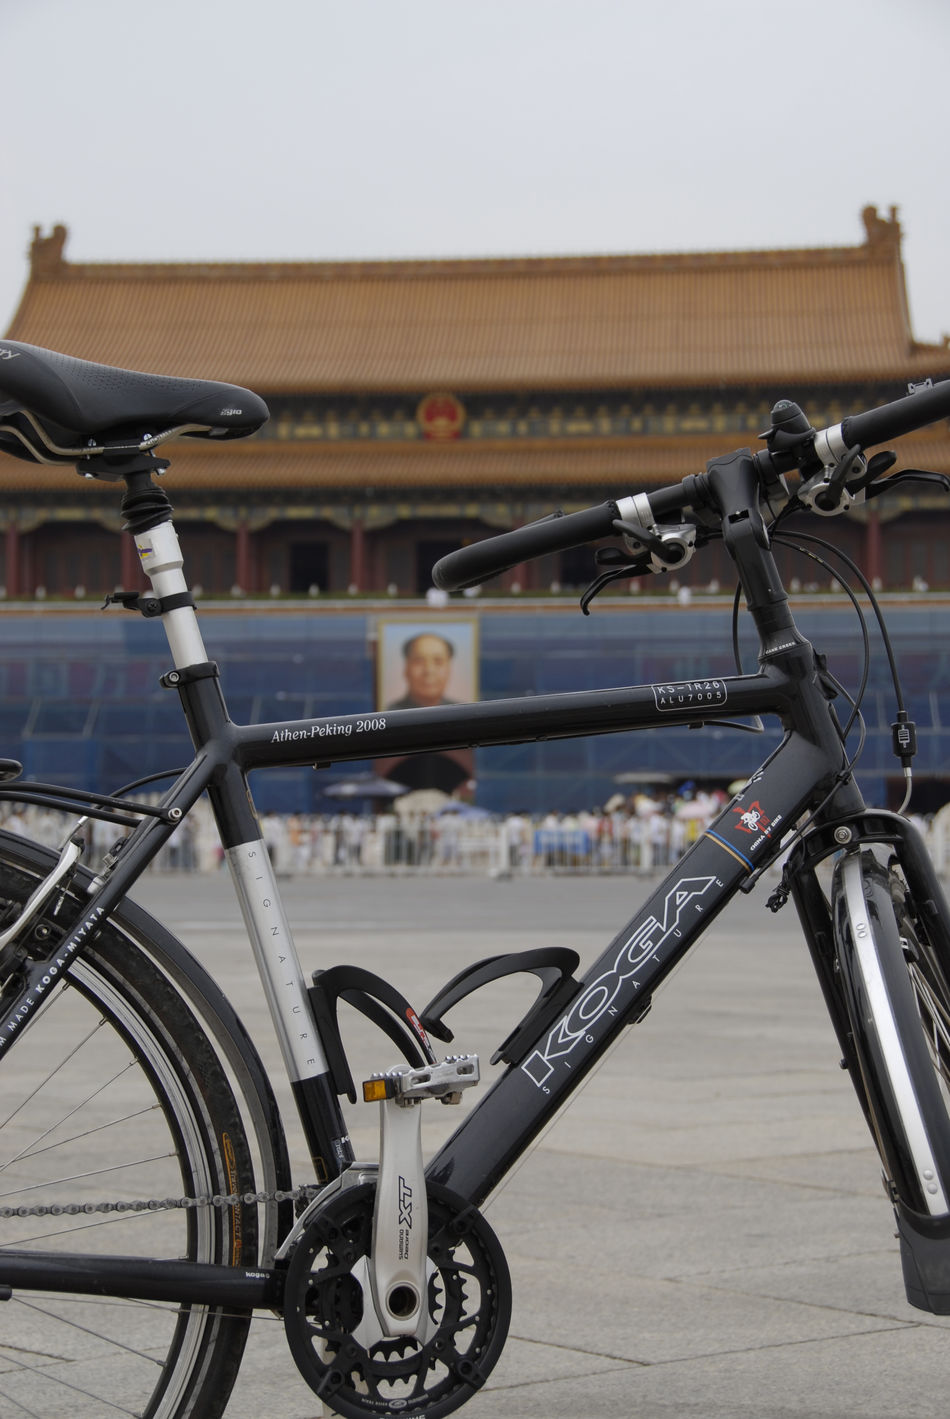 Cycling Beijing Architecture Beijing, China Bicycle Bicycle Rack China Close-up Day Focus On Foreground Land Vehicle Mode Of Transport No People Outdoors Stationary Transportation